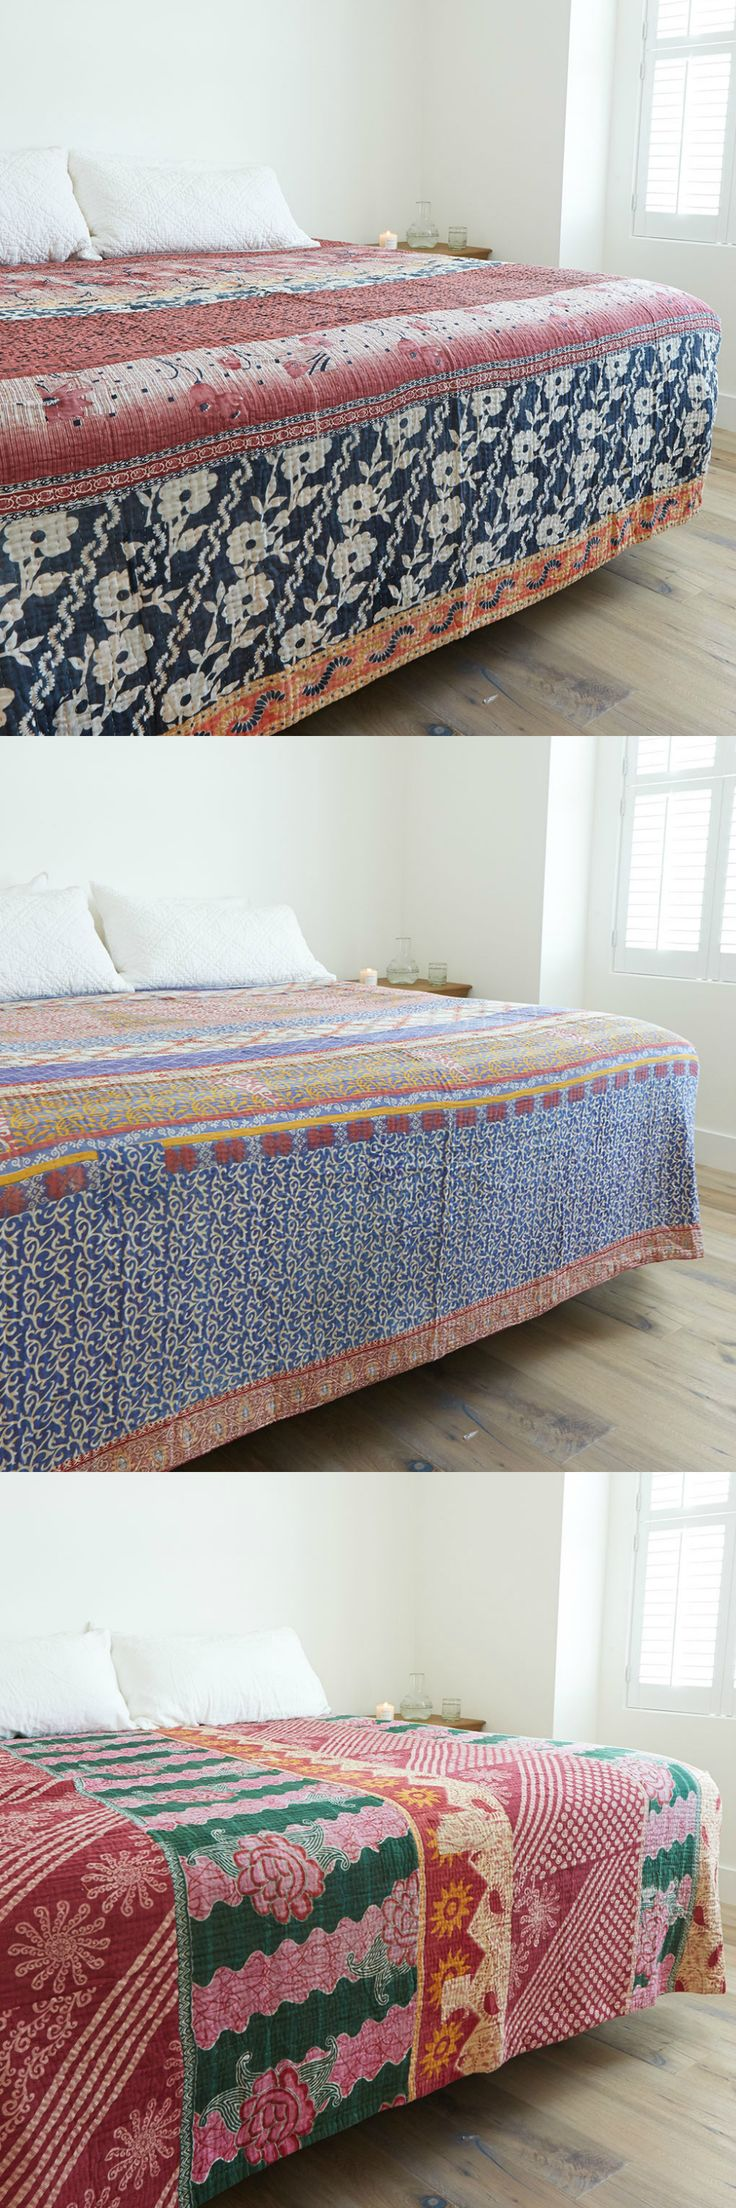 Choose the perfect one-of-a-kind Kantha quilt for your bedroom.